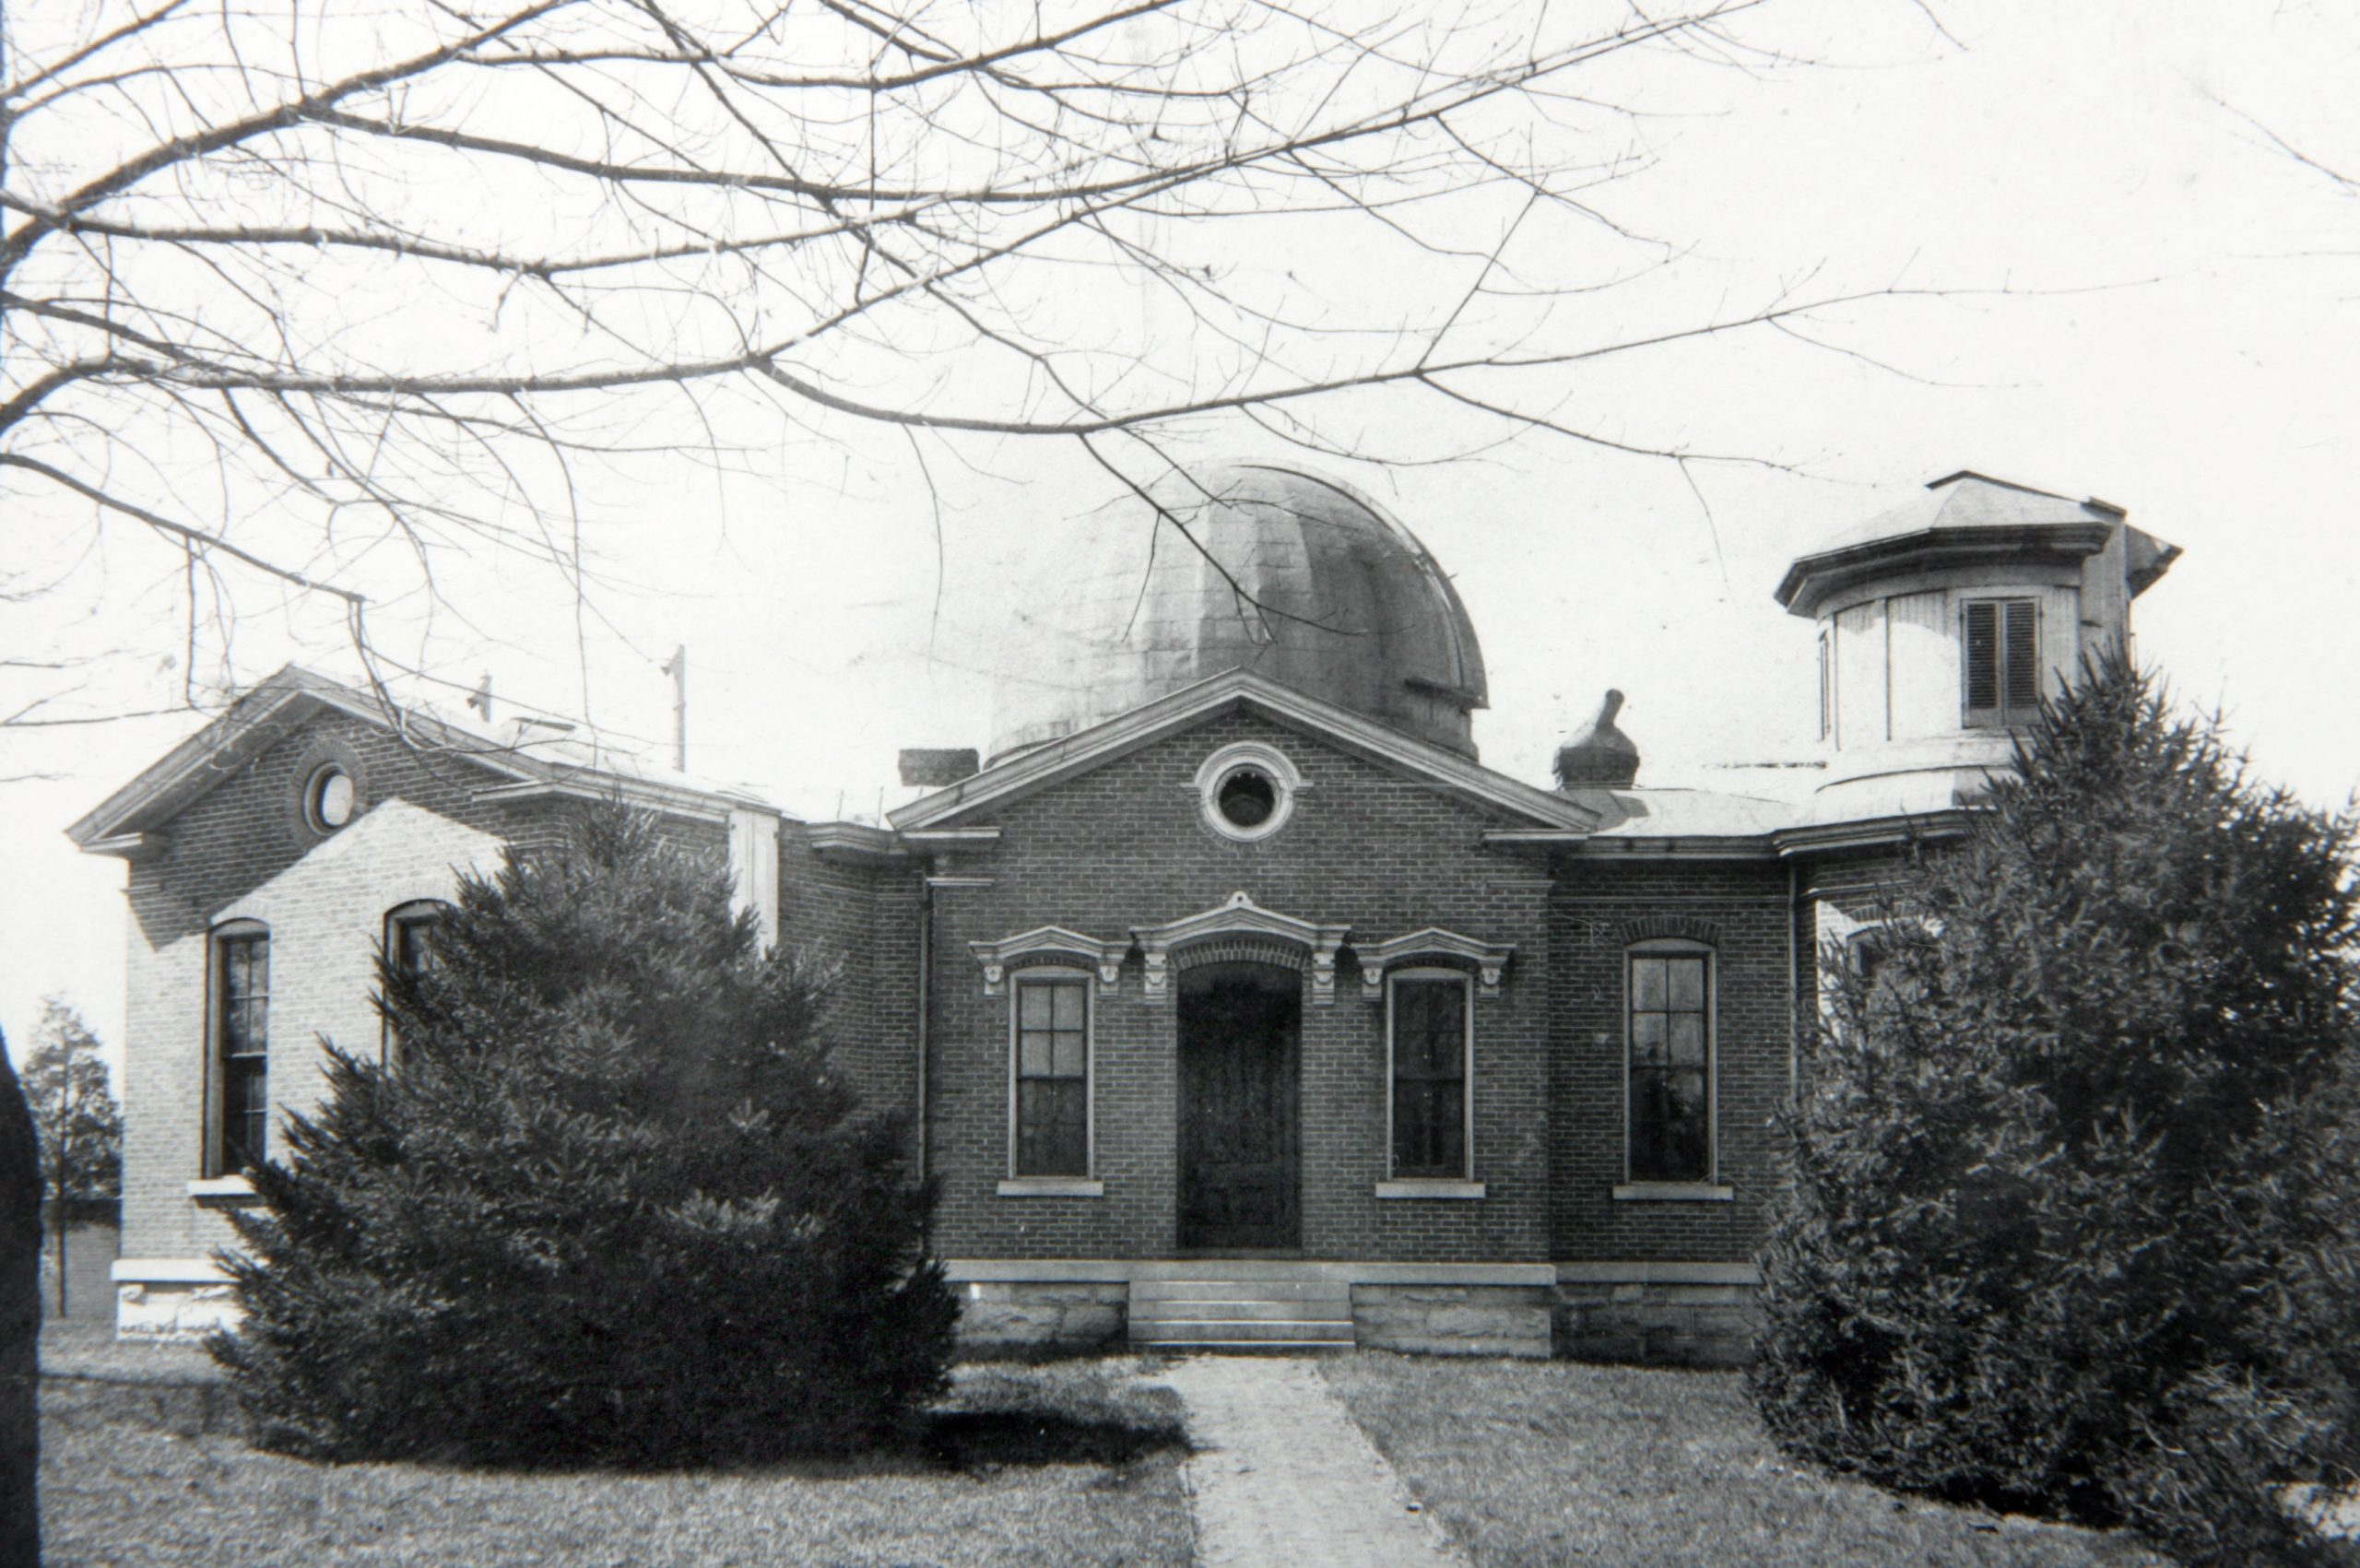 The original Astronomical Observatory